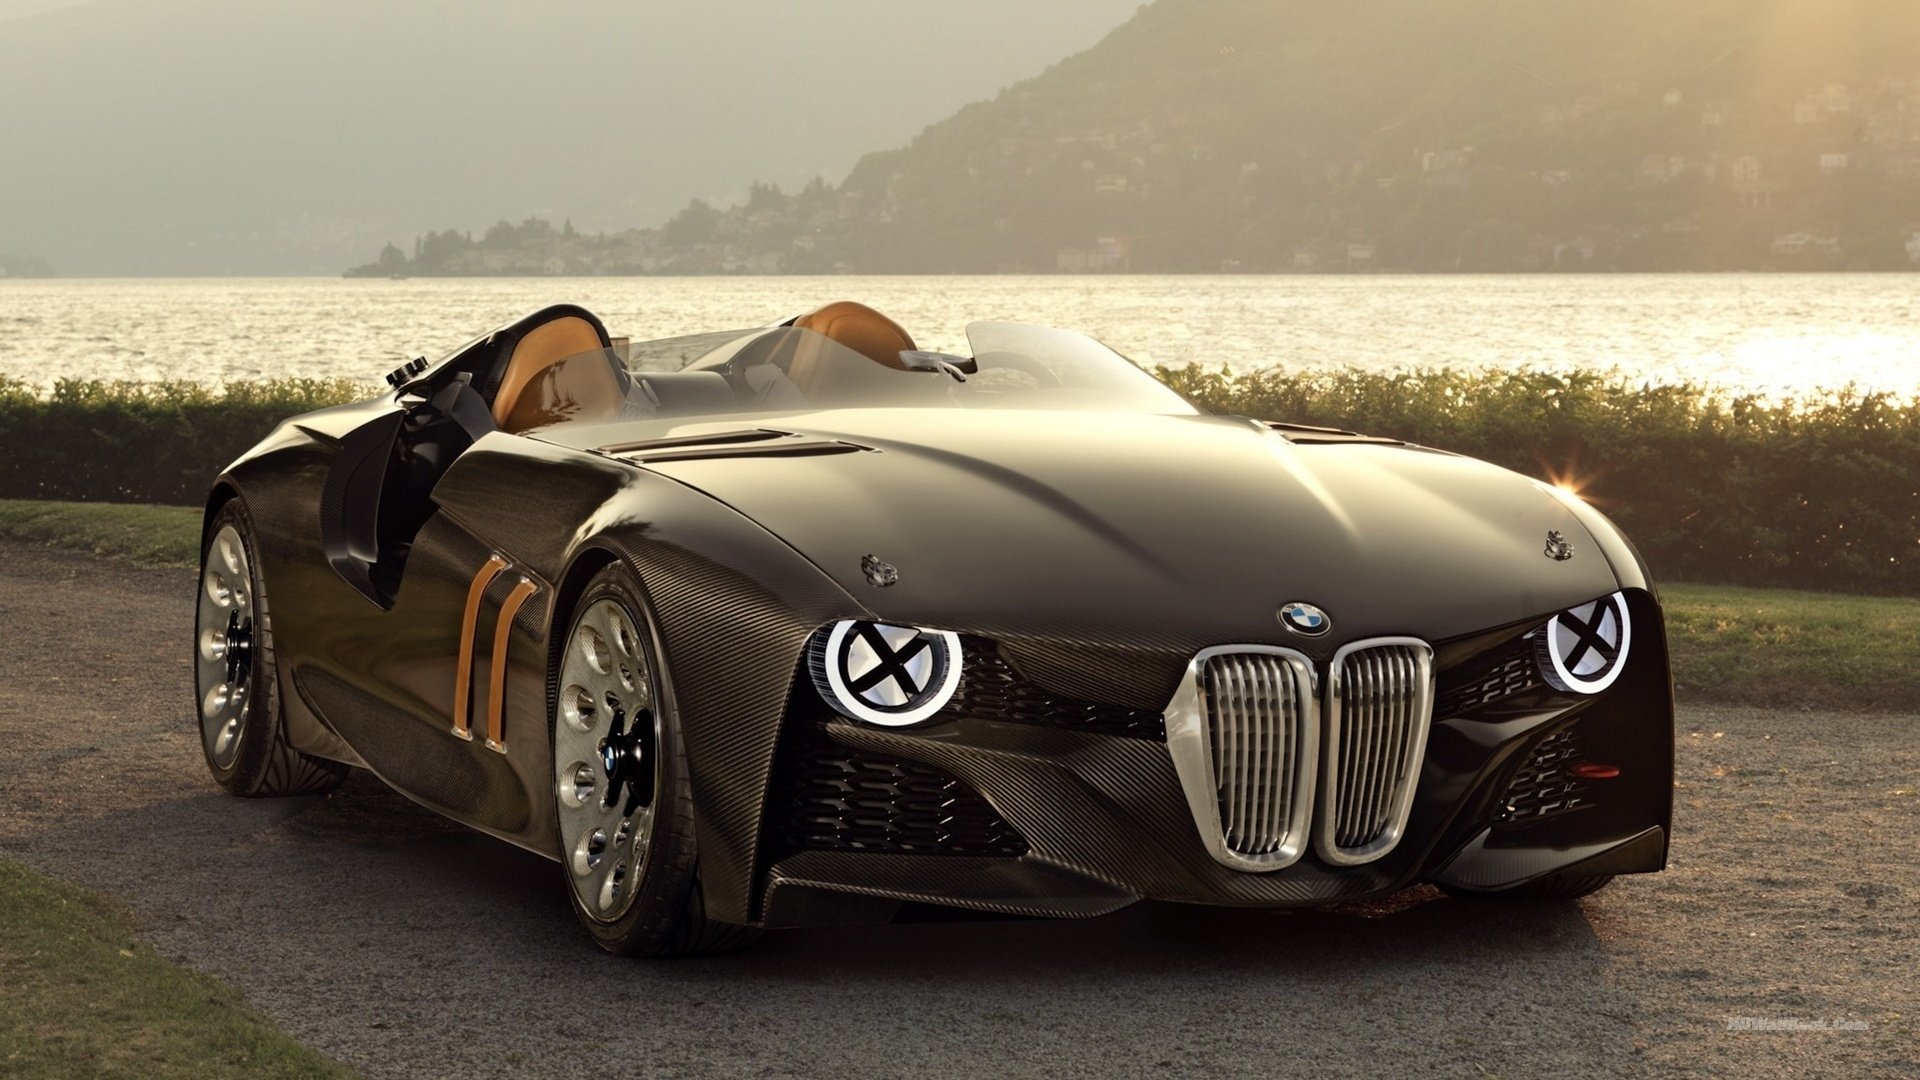 BMW 328 Hommage wallpaper